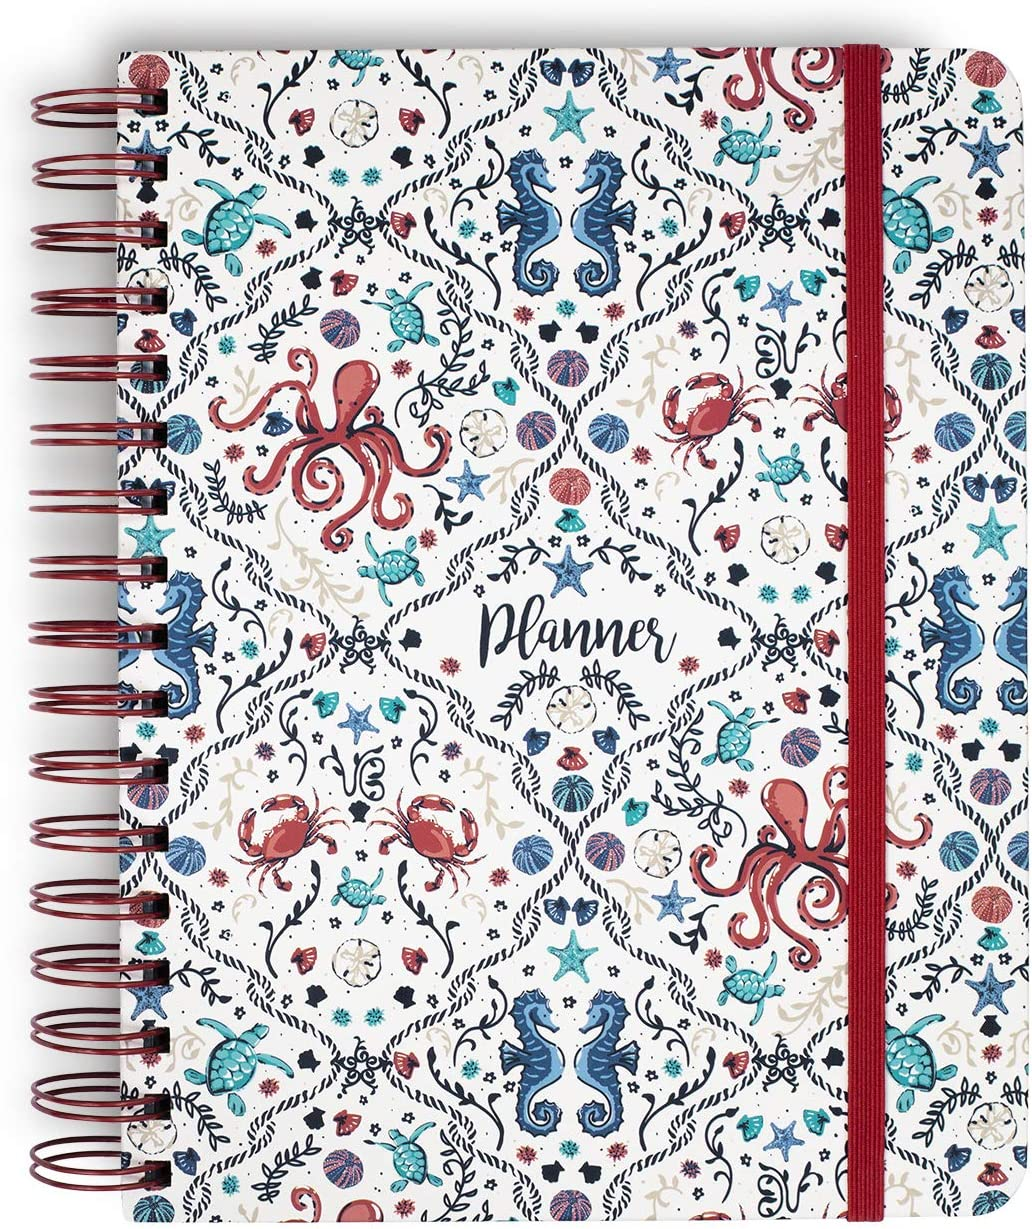 Vera Bradley Large Undated Planner Daily Weekly and Monthly, Hardcover Personal Organizer with Stickers and Tab Dividers, Sea Life